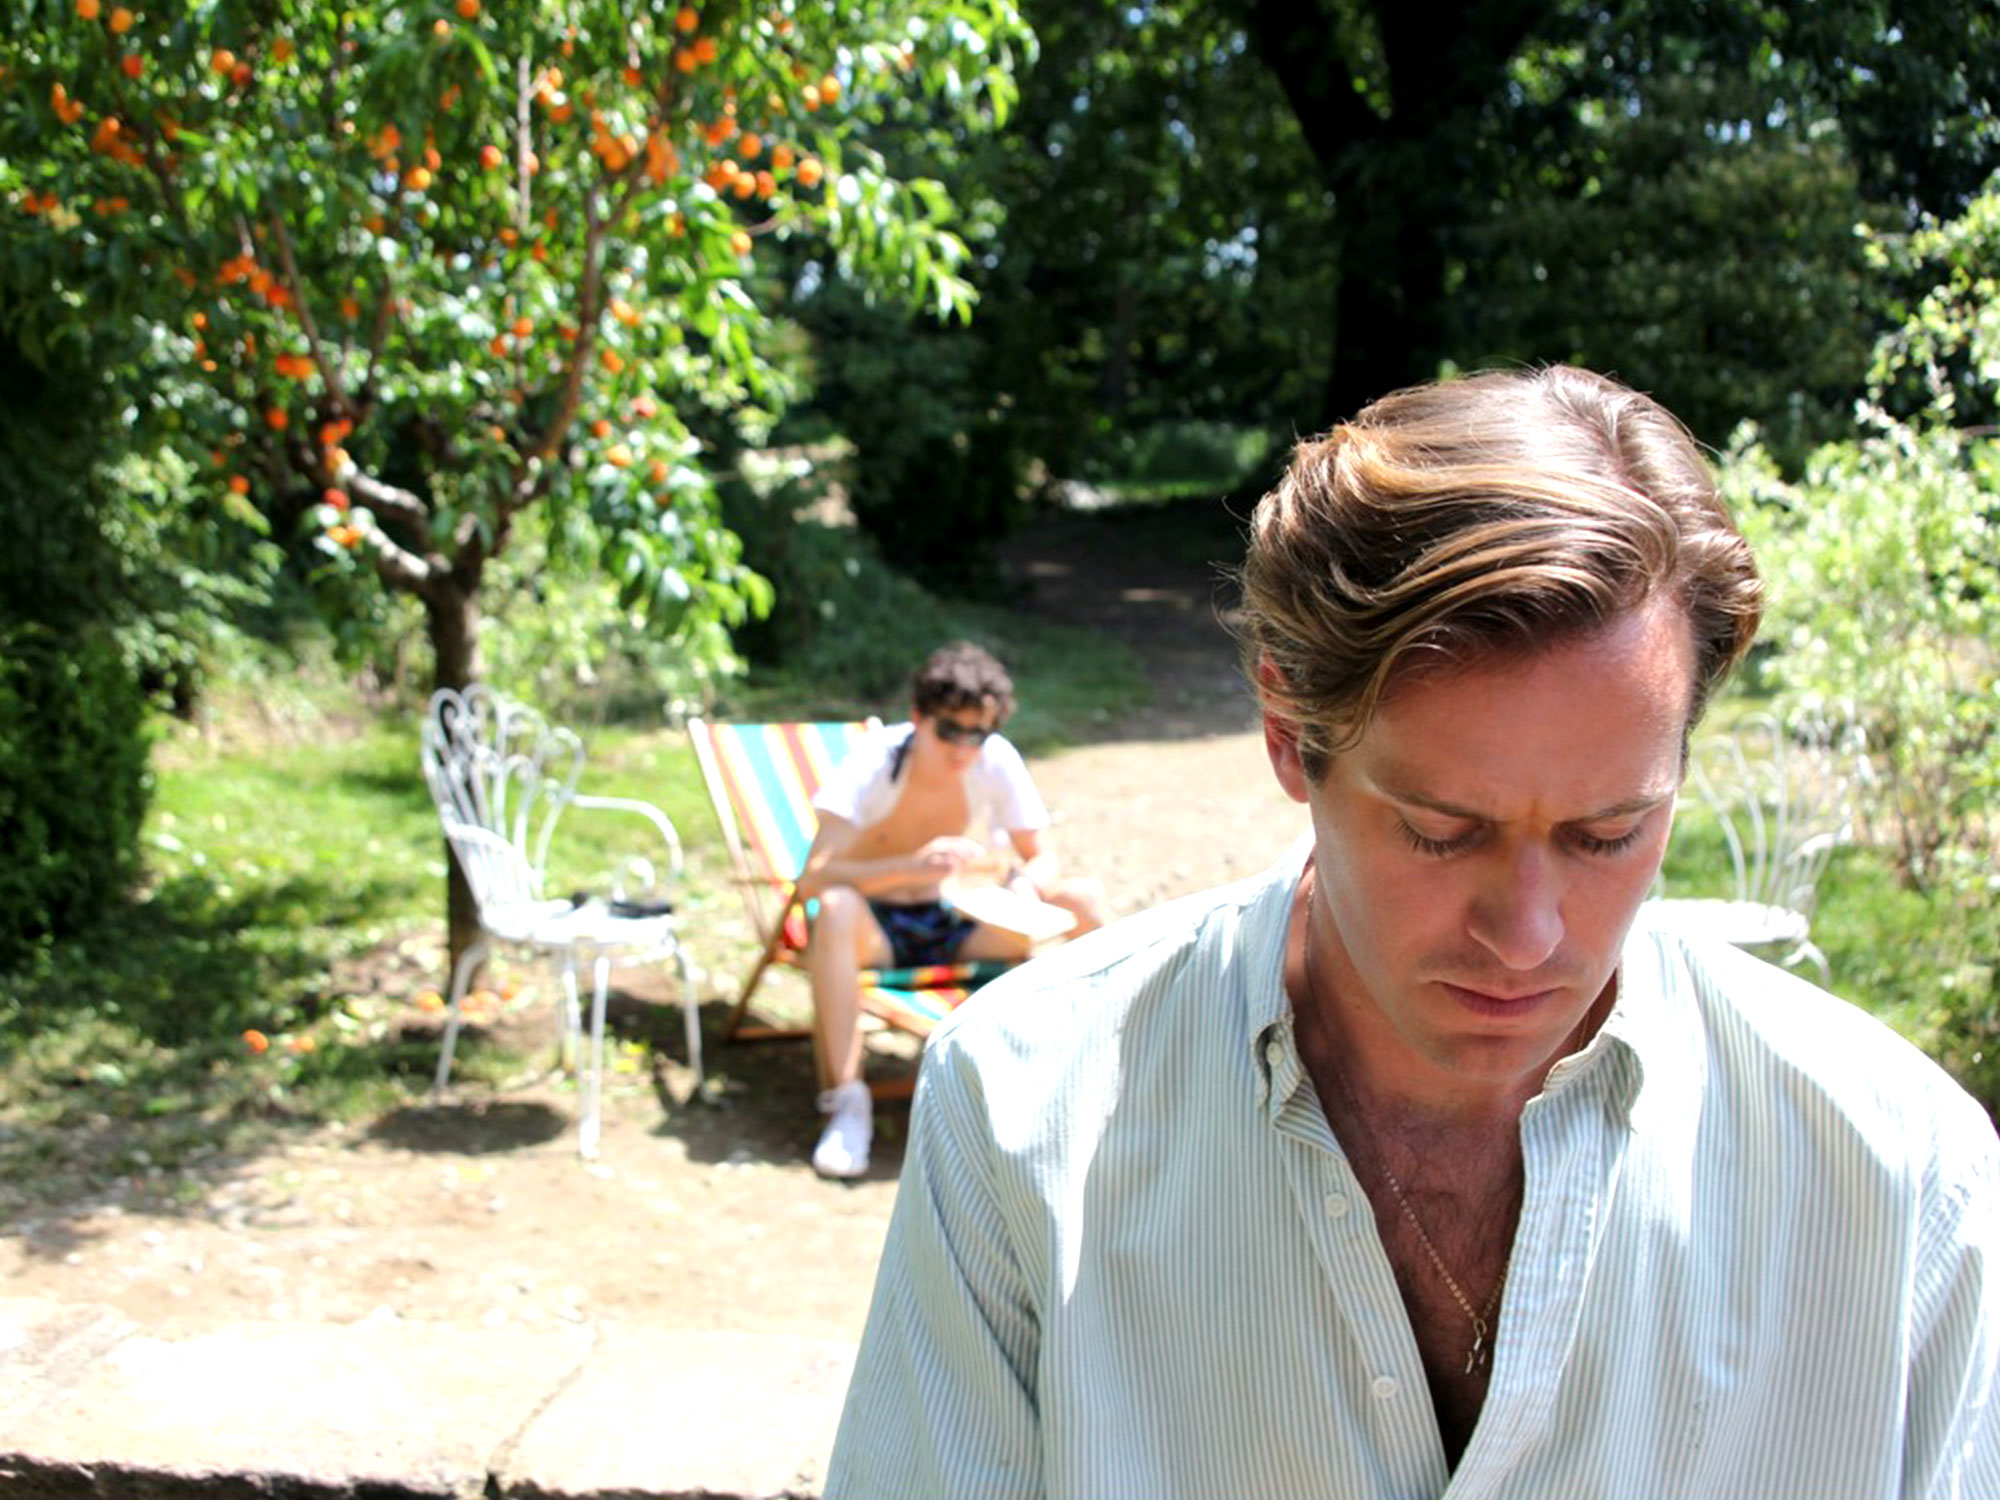 Call Me by Your Name is an erotic film in every sense of the word. It's also a masterpiece.